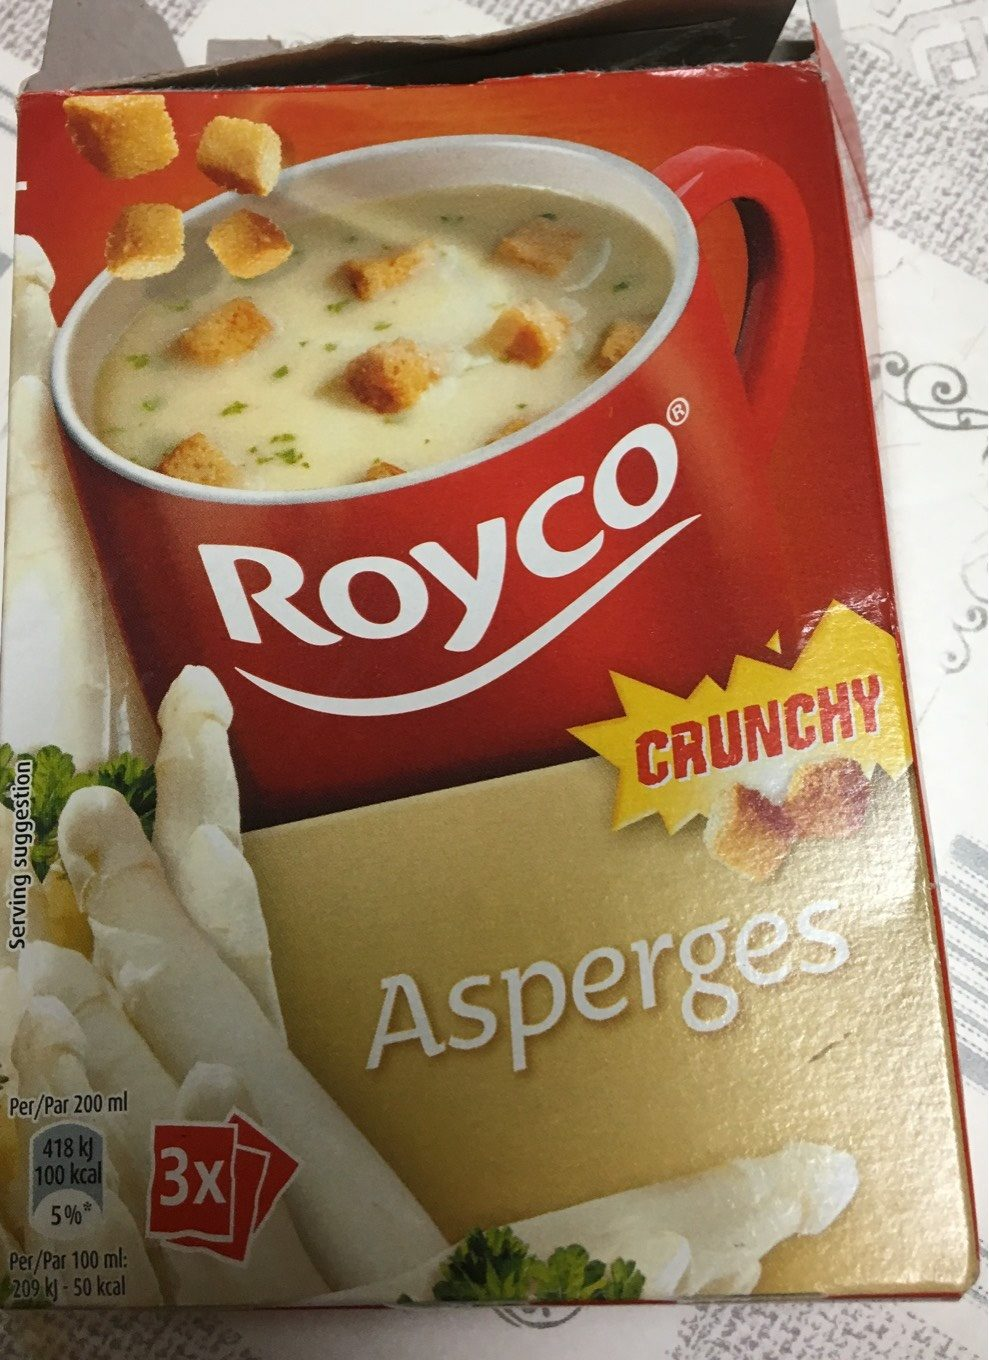 Minute Soup Asperges, Royco Campbell's - Product - fr